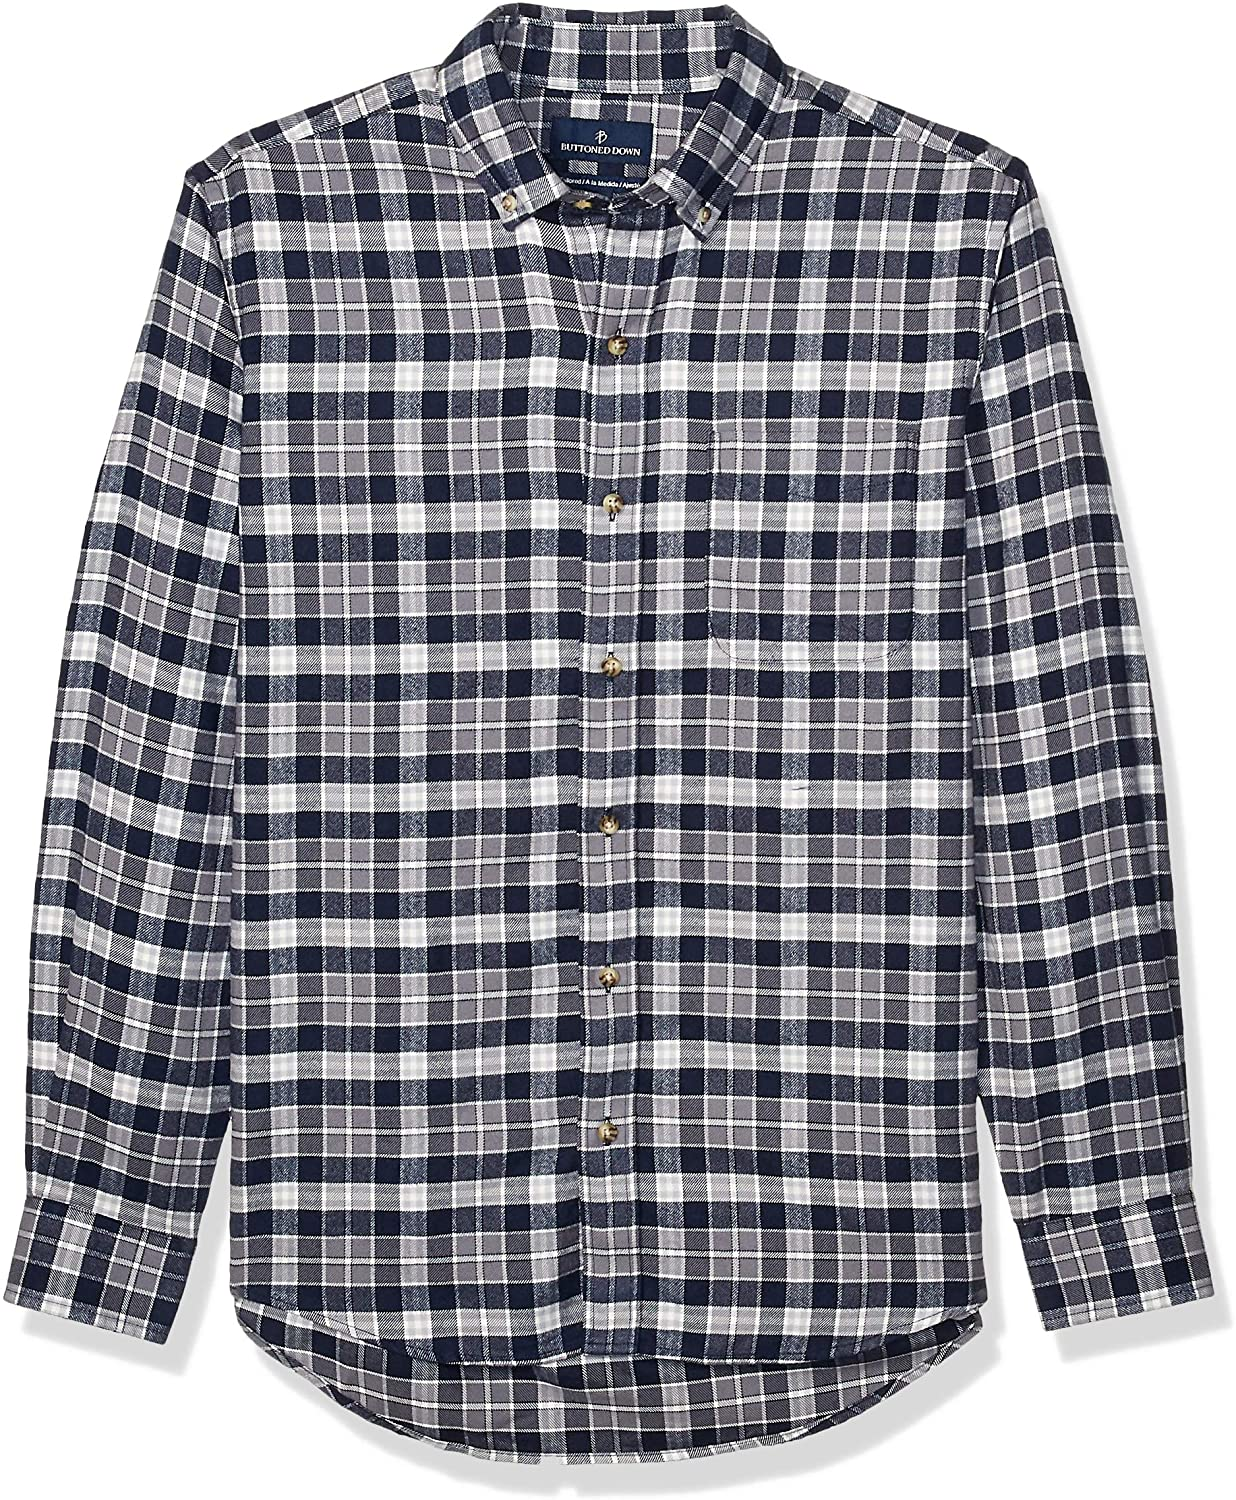 DHgate Brand - Buttoned Down Men's Tailored Fit Supima Cotton Plaid Flannel Sport Shirt